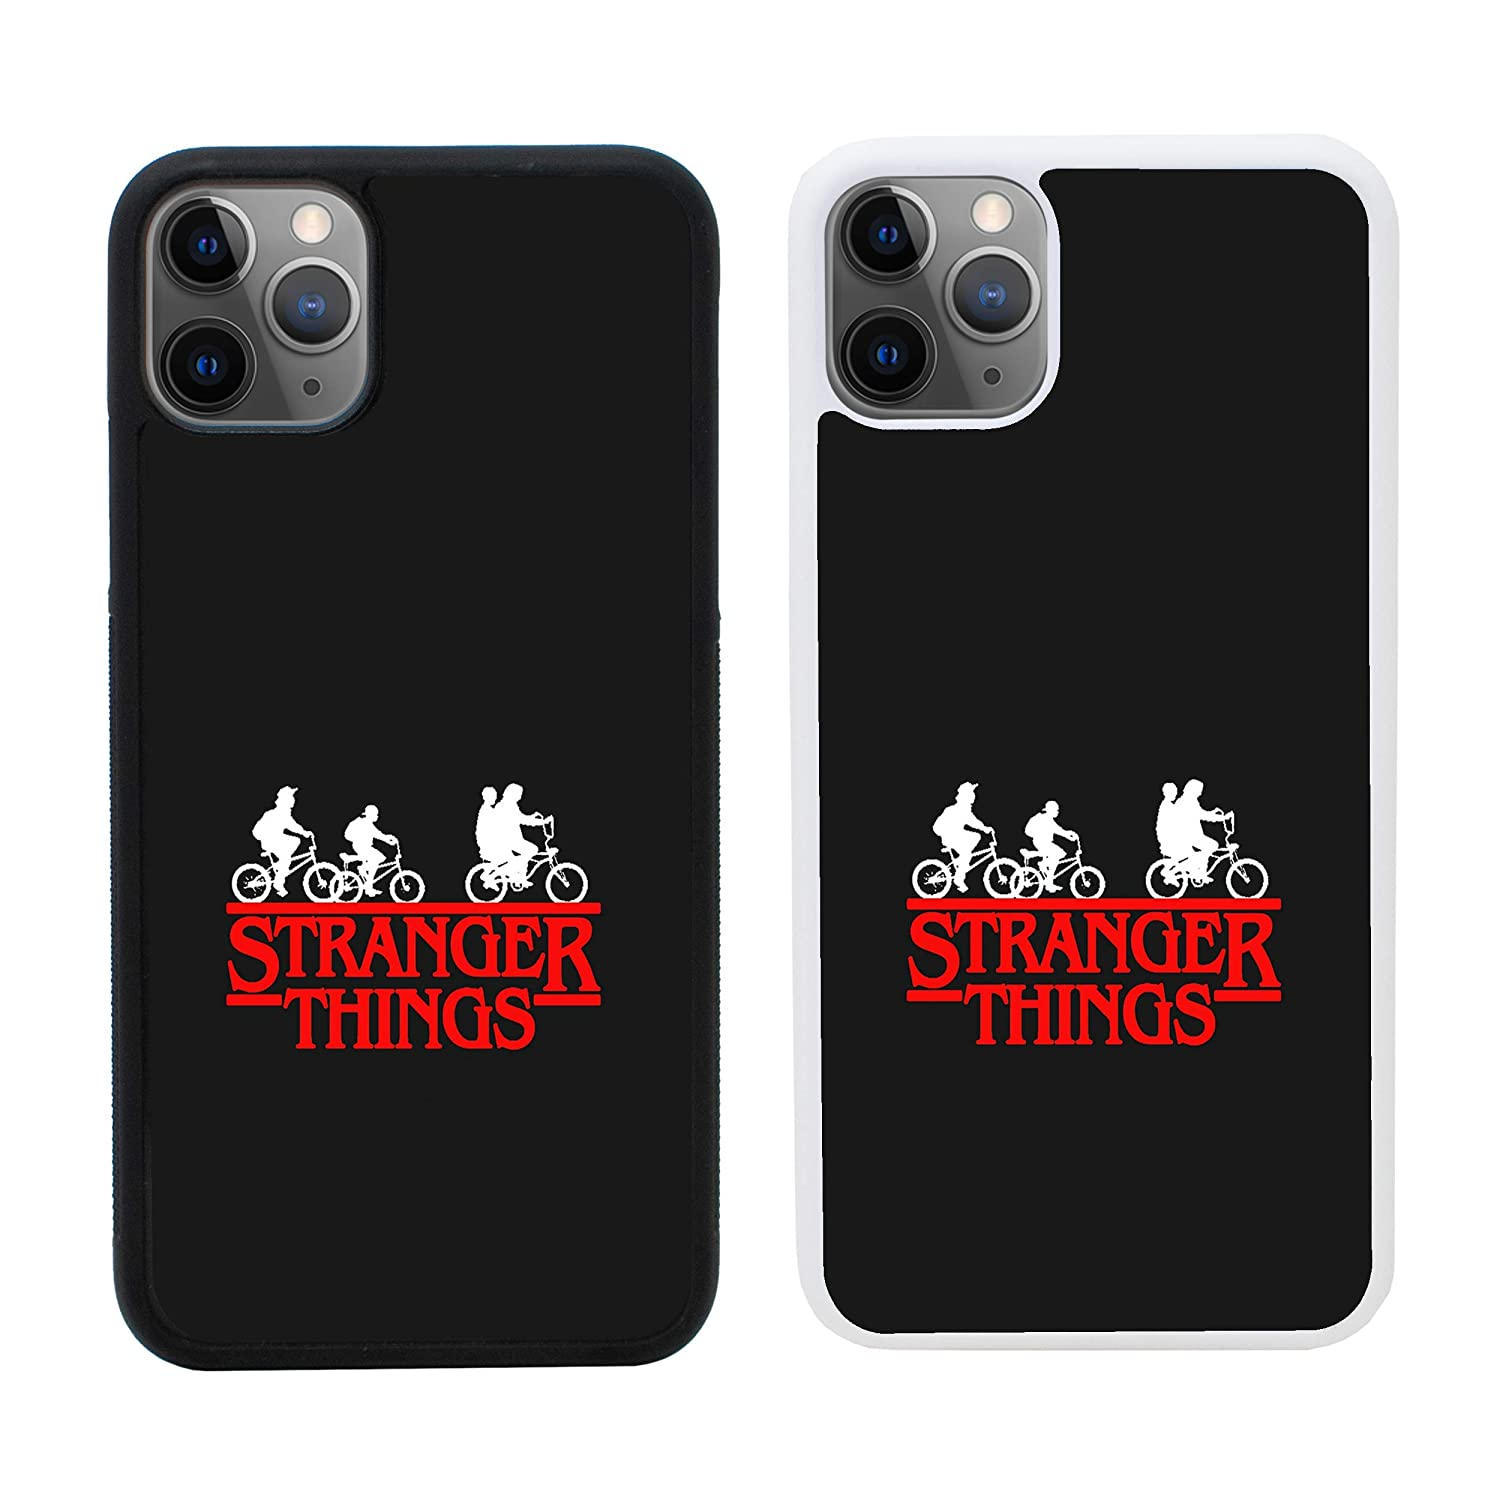 I-CHOOSE LIMITED Stranger Things Apple iPhone 11 Pro Max Phone Case Protective Bumper Cover for 6.5 Screen